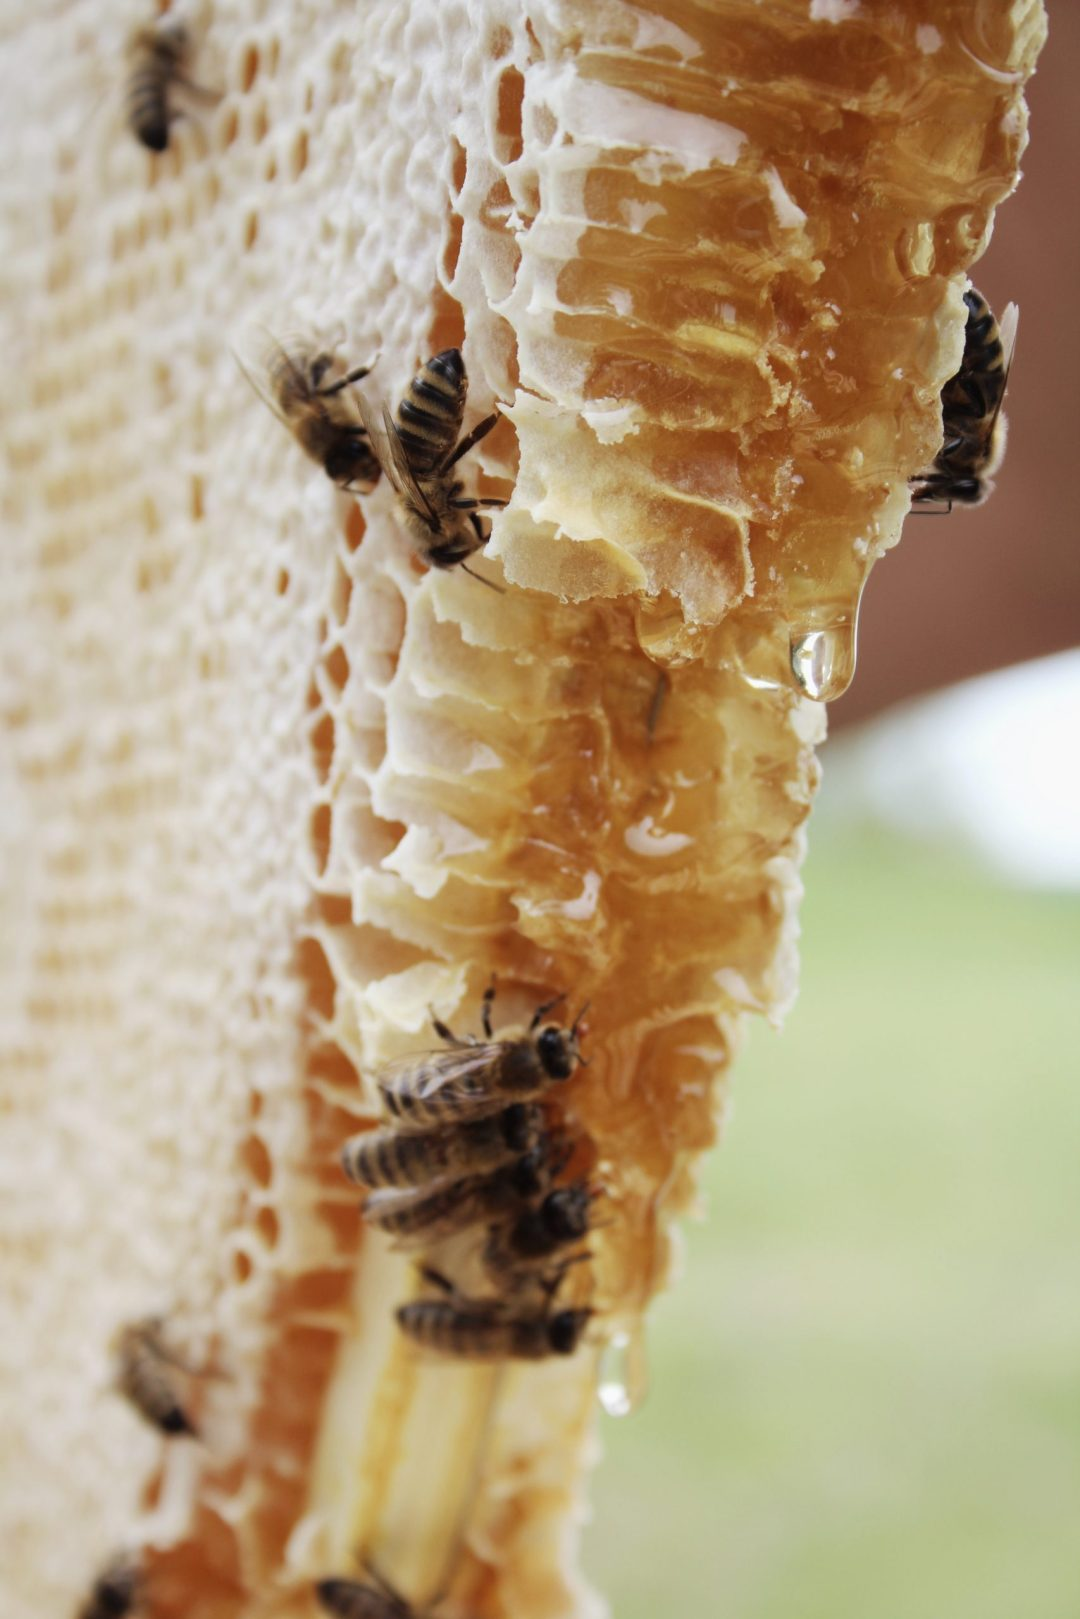 honey comb and bees